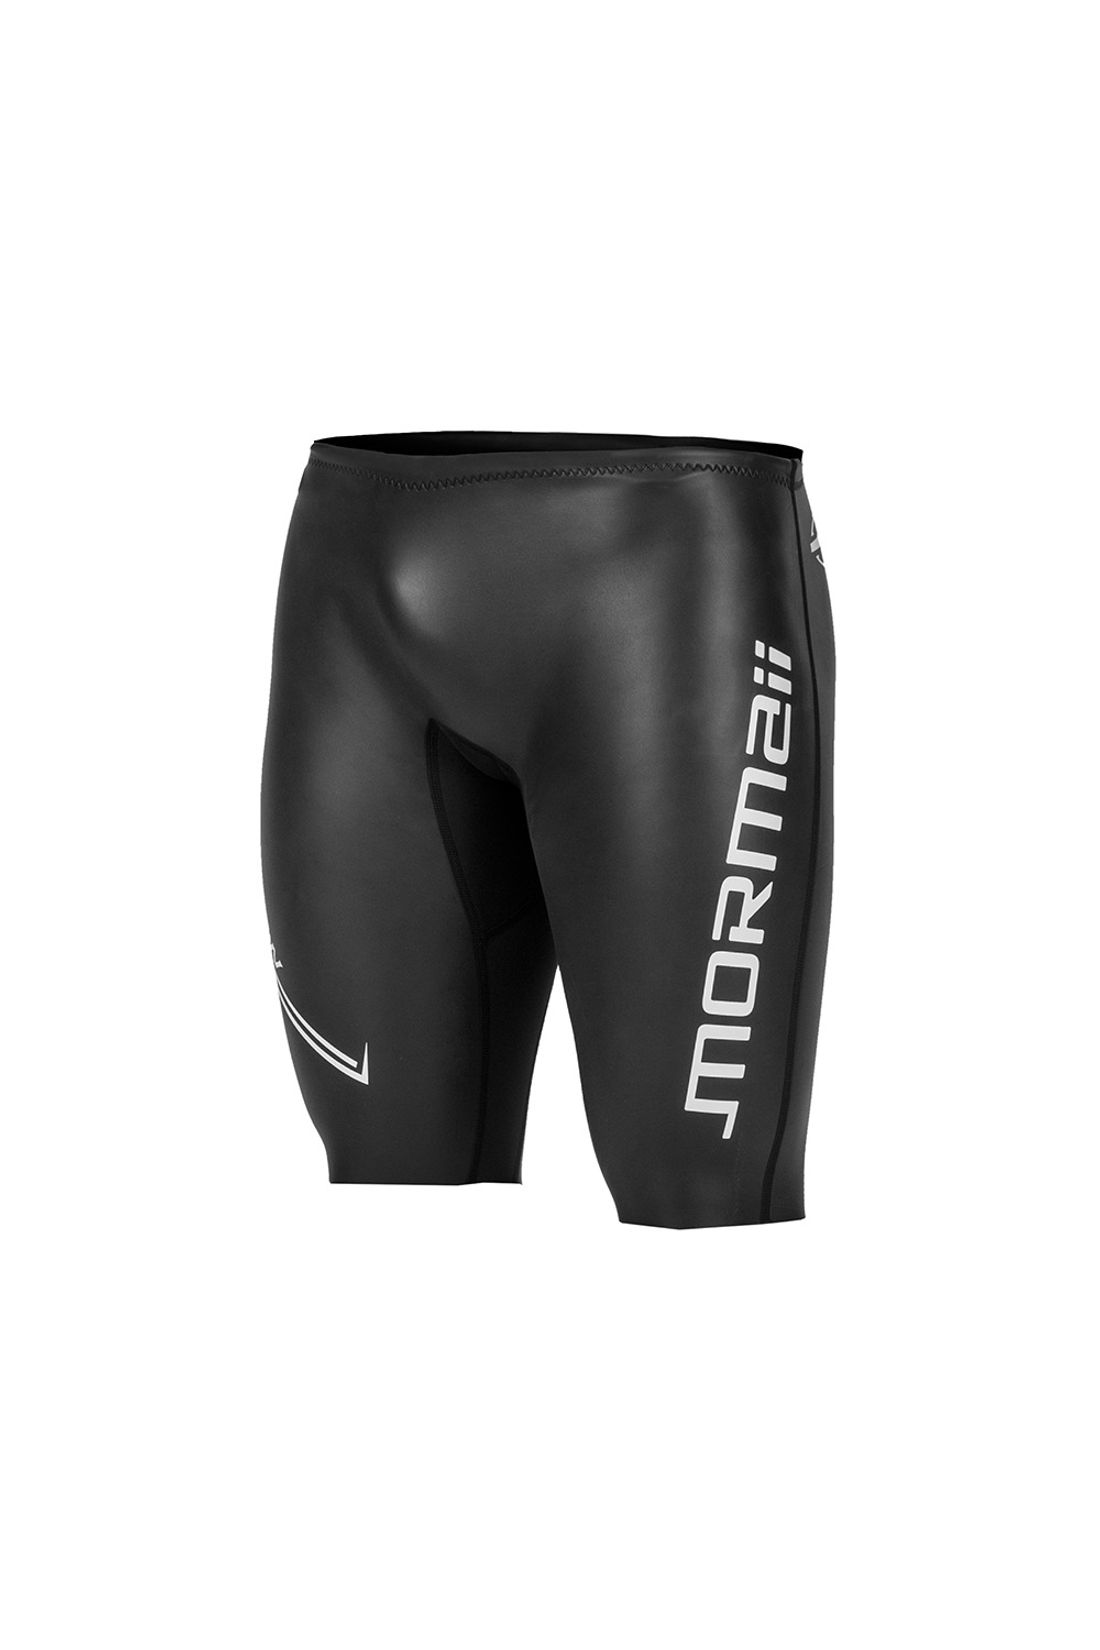 8b35b1f7e Bermuda Masculina Triathlon 2mm Mormaii Athlon / Preto / G - LD Sports